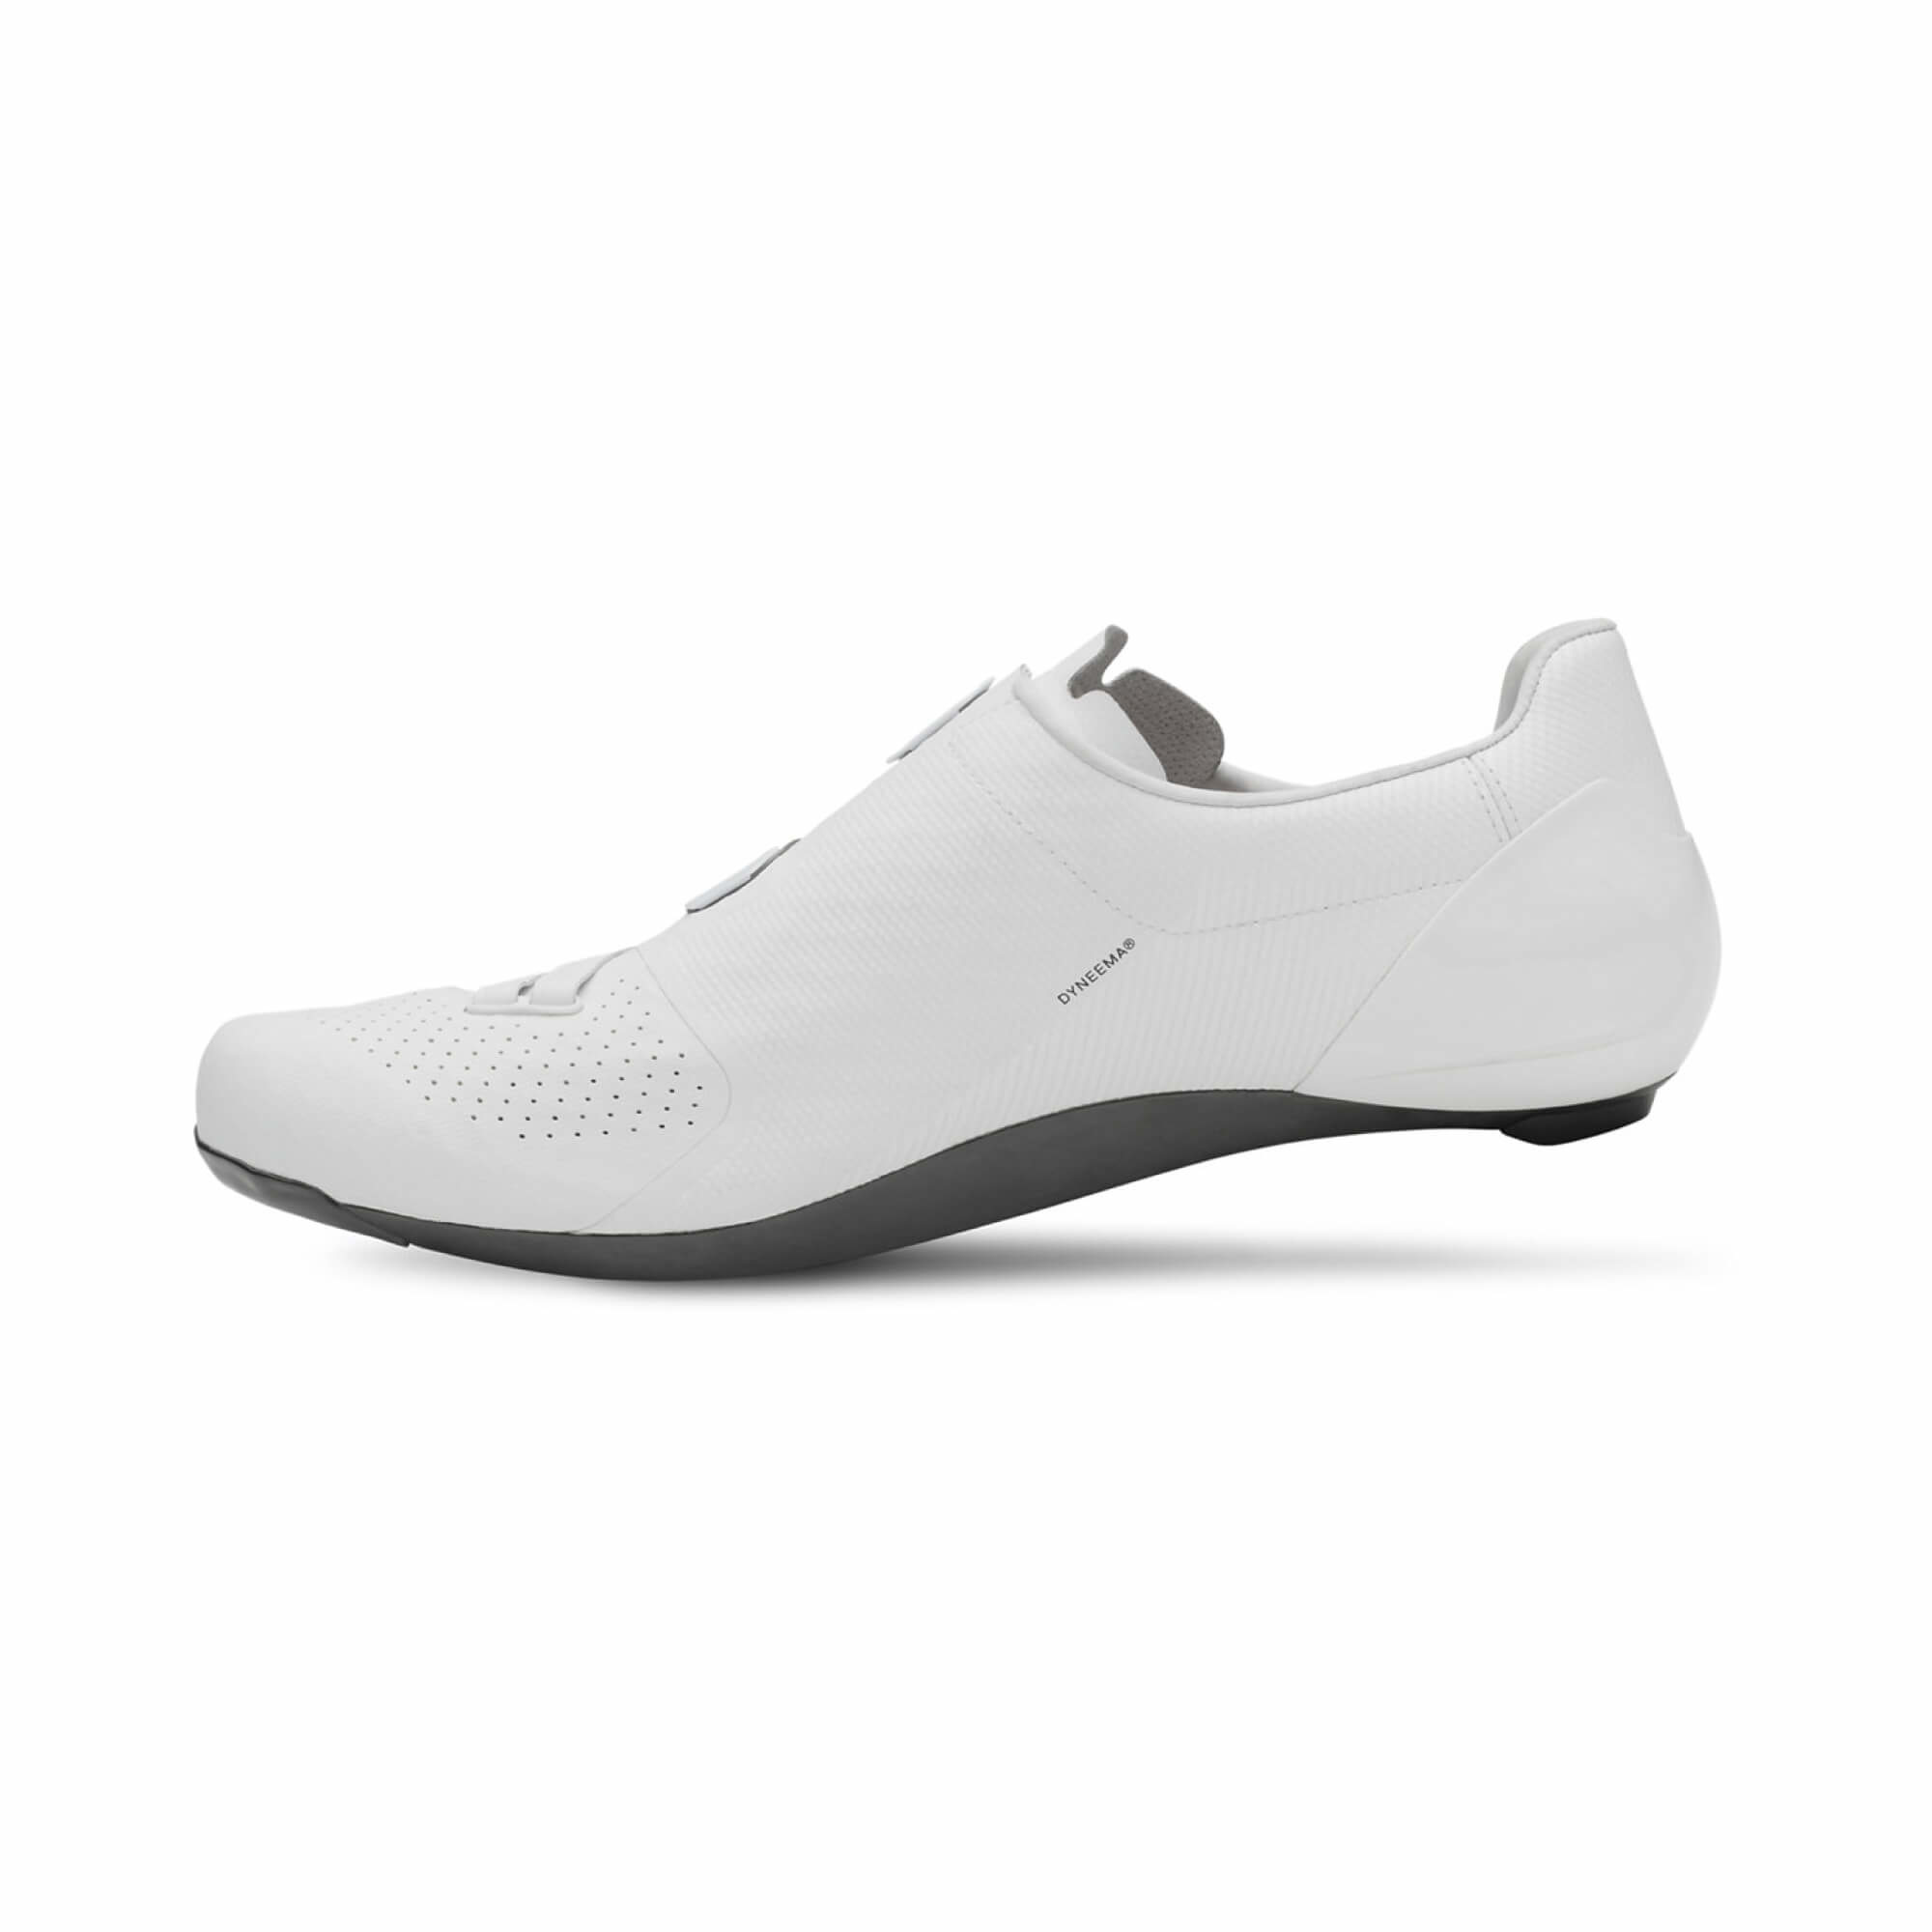 S-Works 7 Road Shoe-7